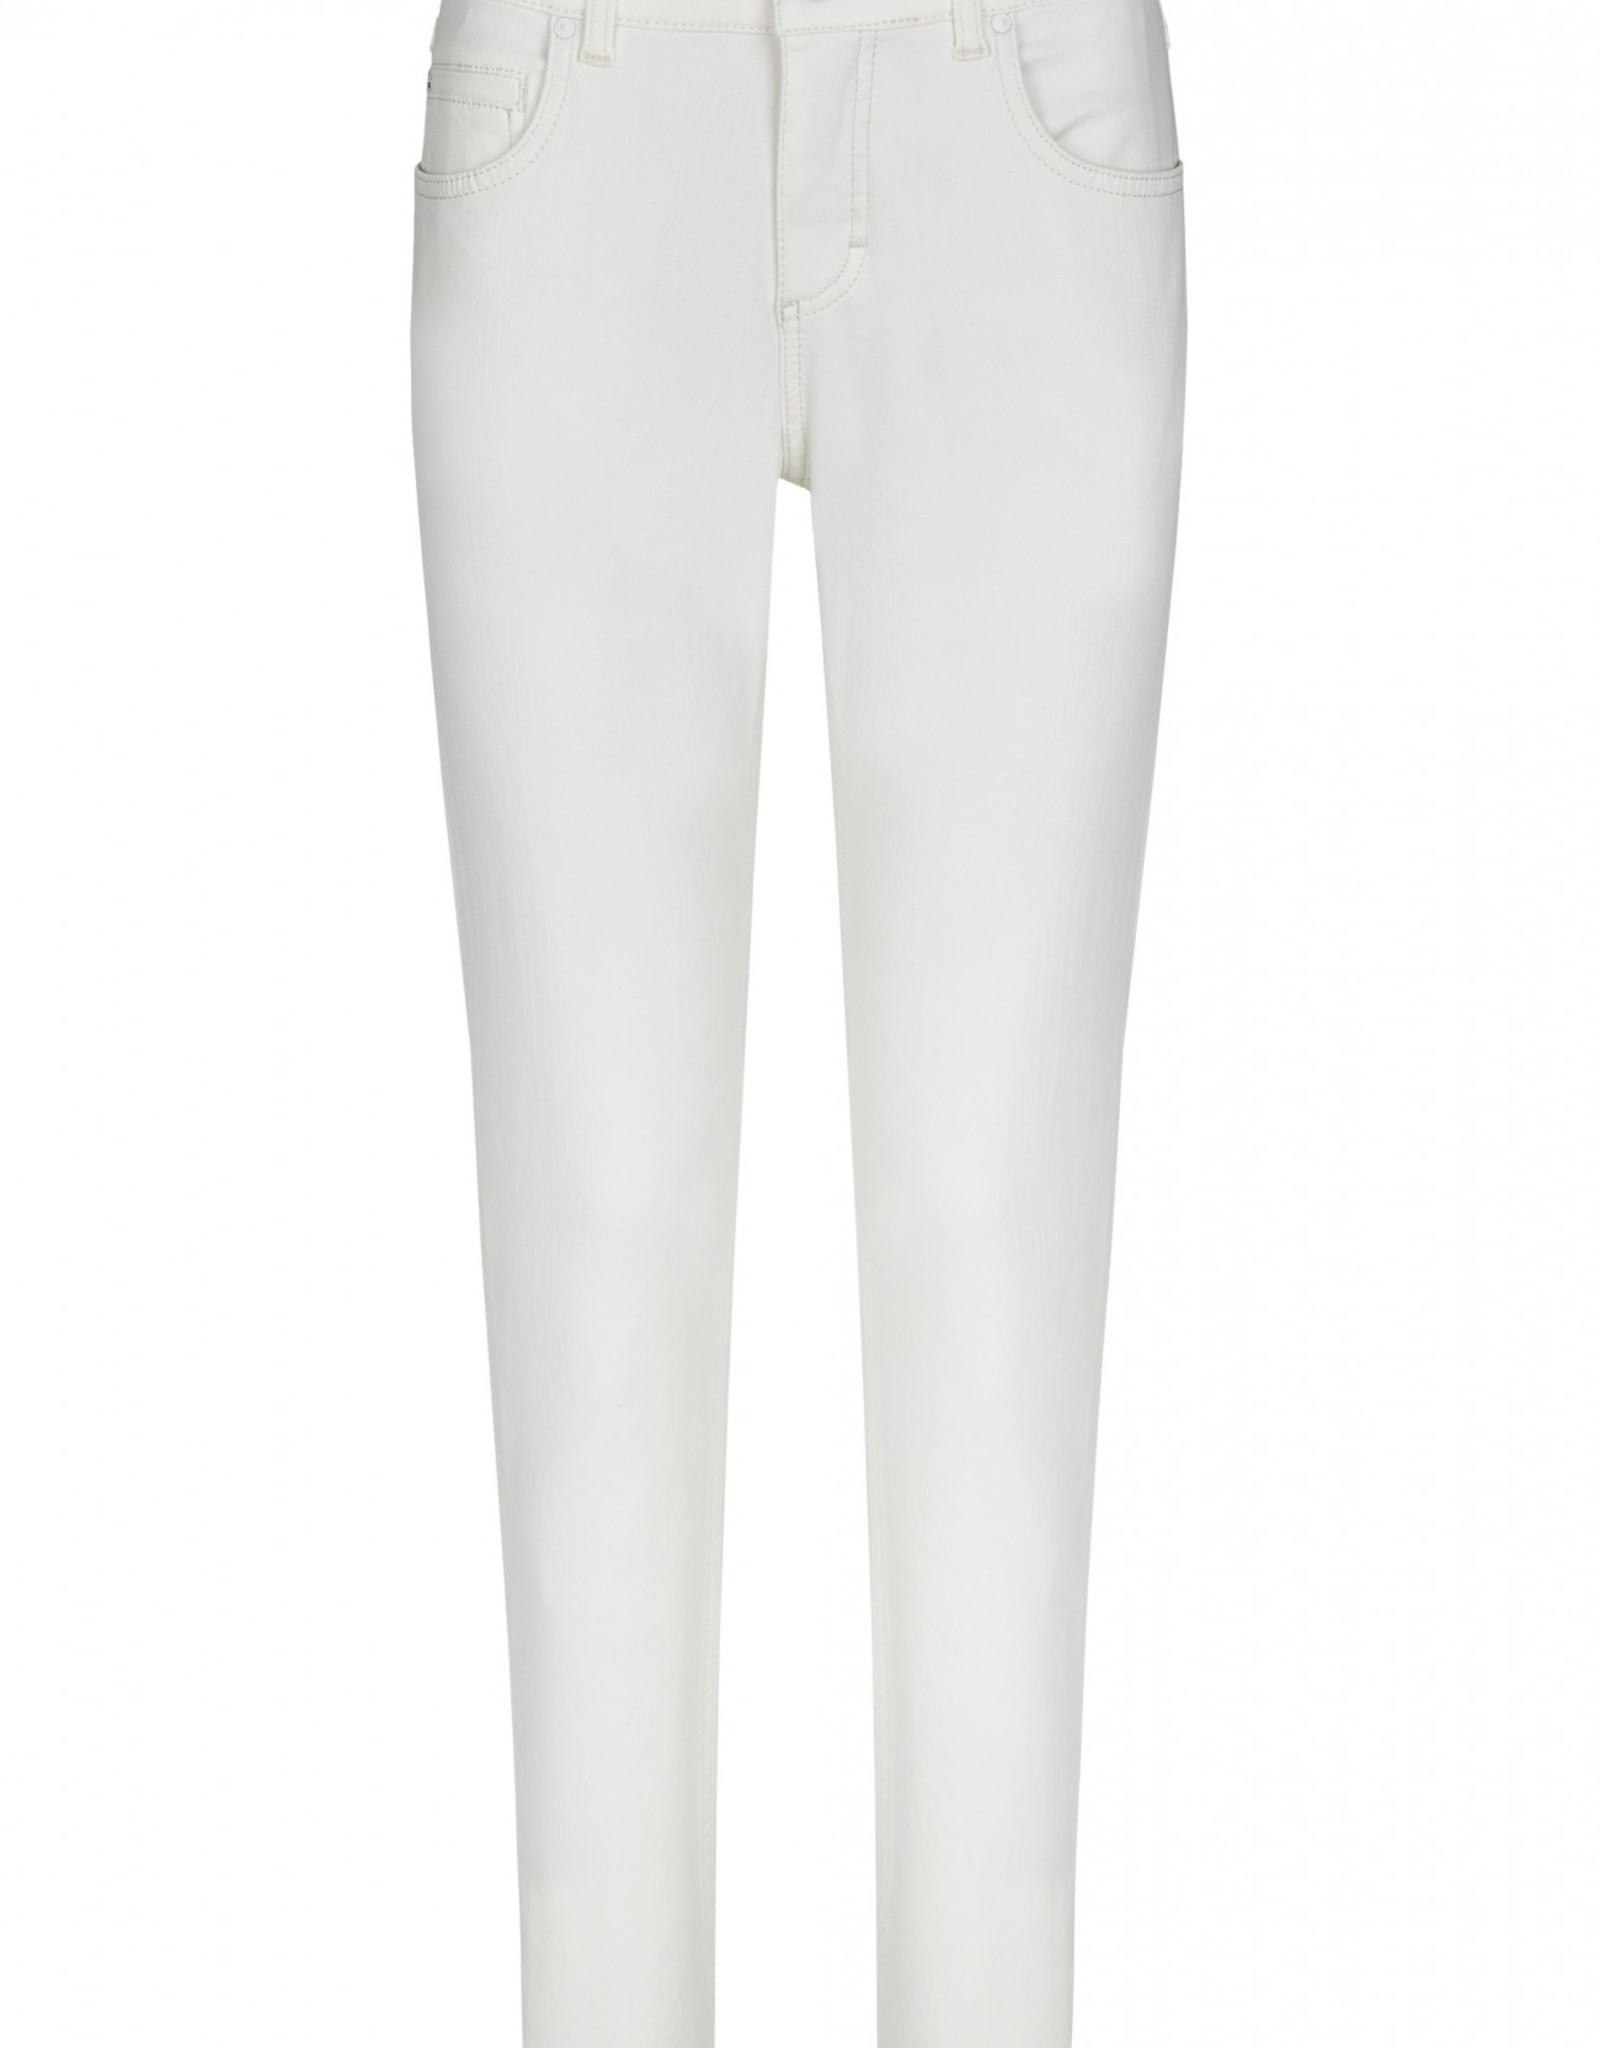 Angels jeans 340030-784/701 cici